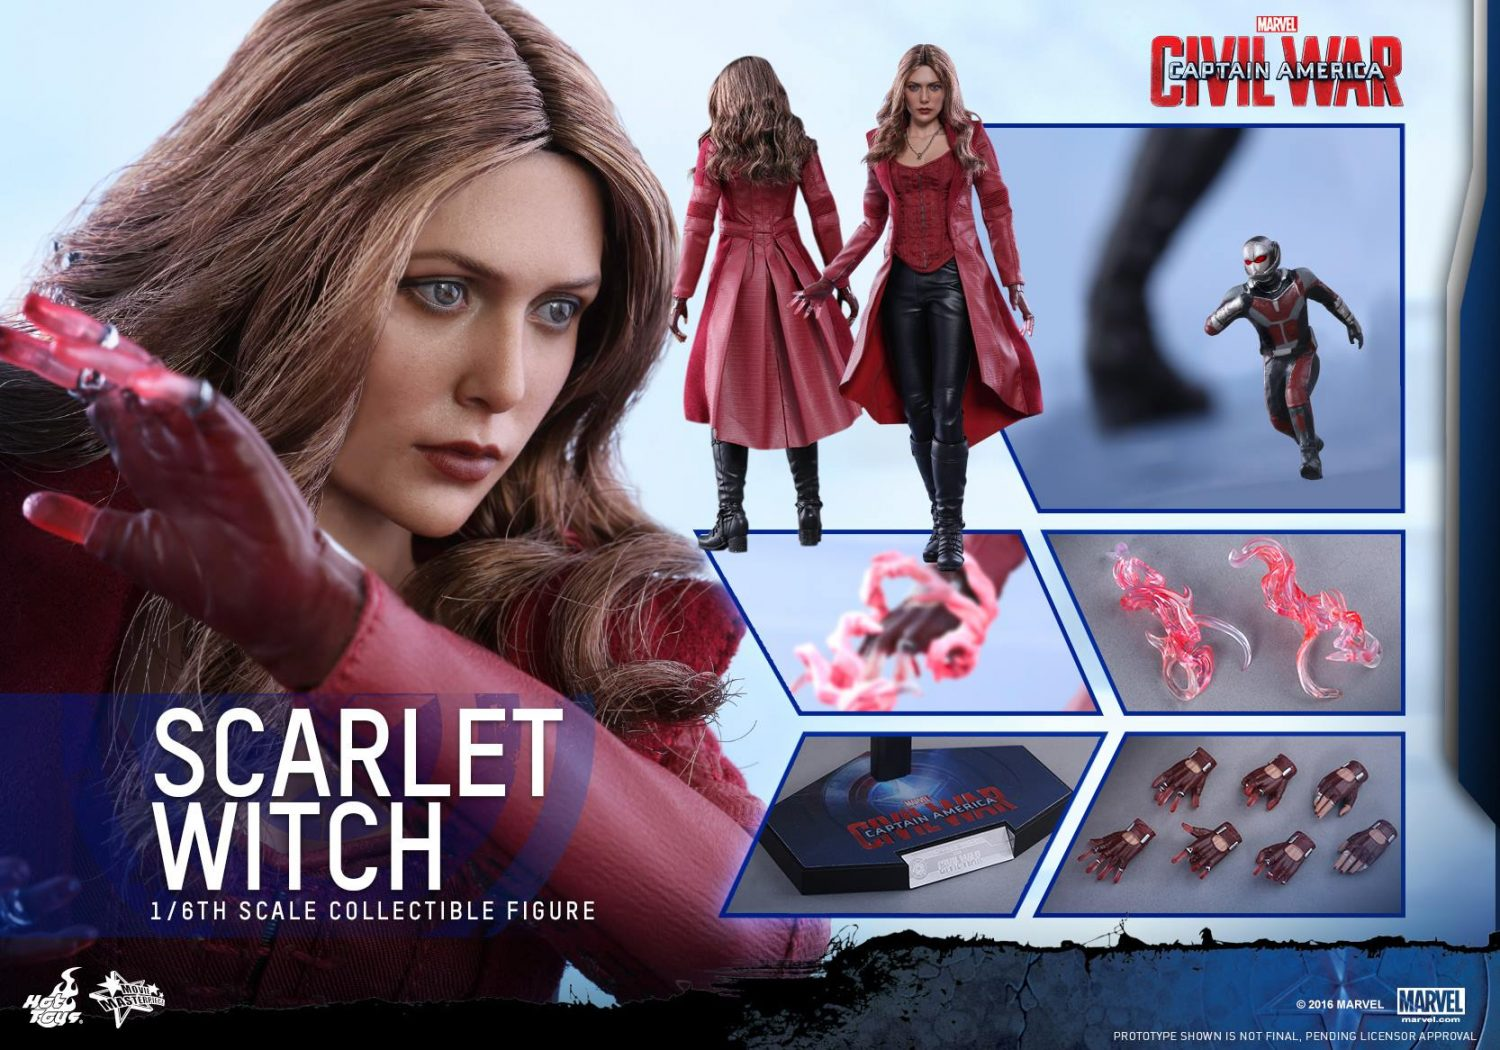 Hot Toys Captain America: Civil War Scarlet Witch Sixth Scale Figure Pre-Orders Are Live